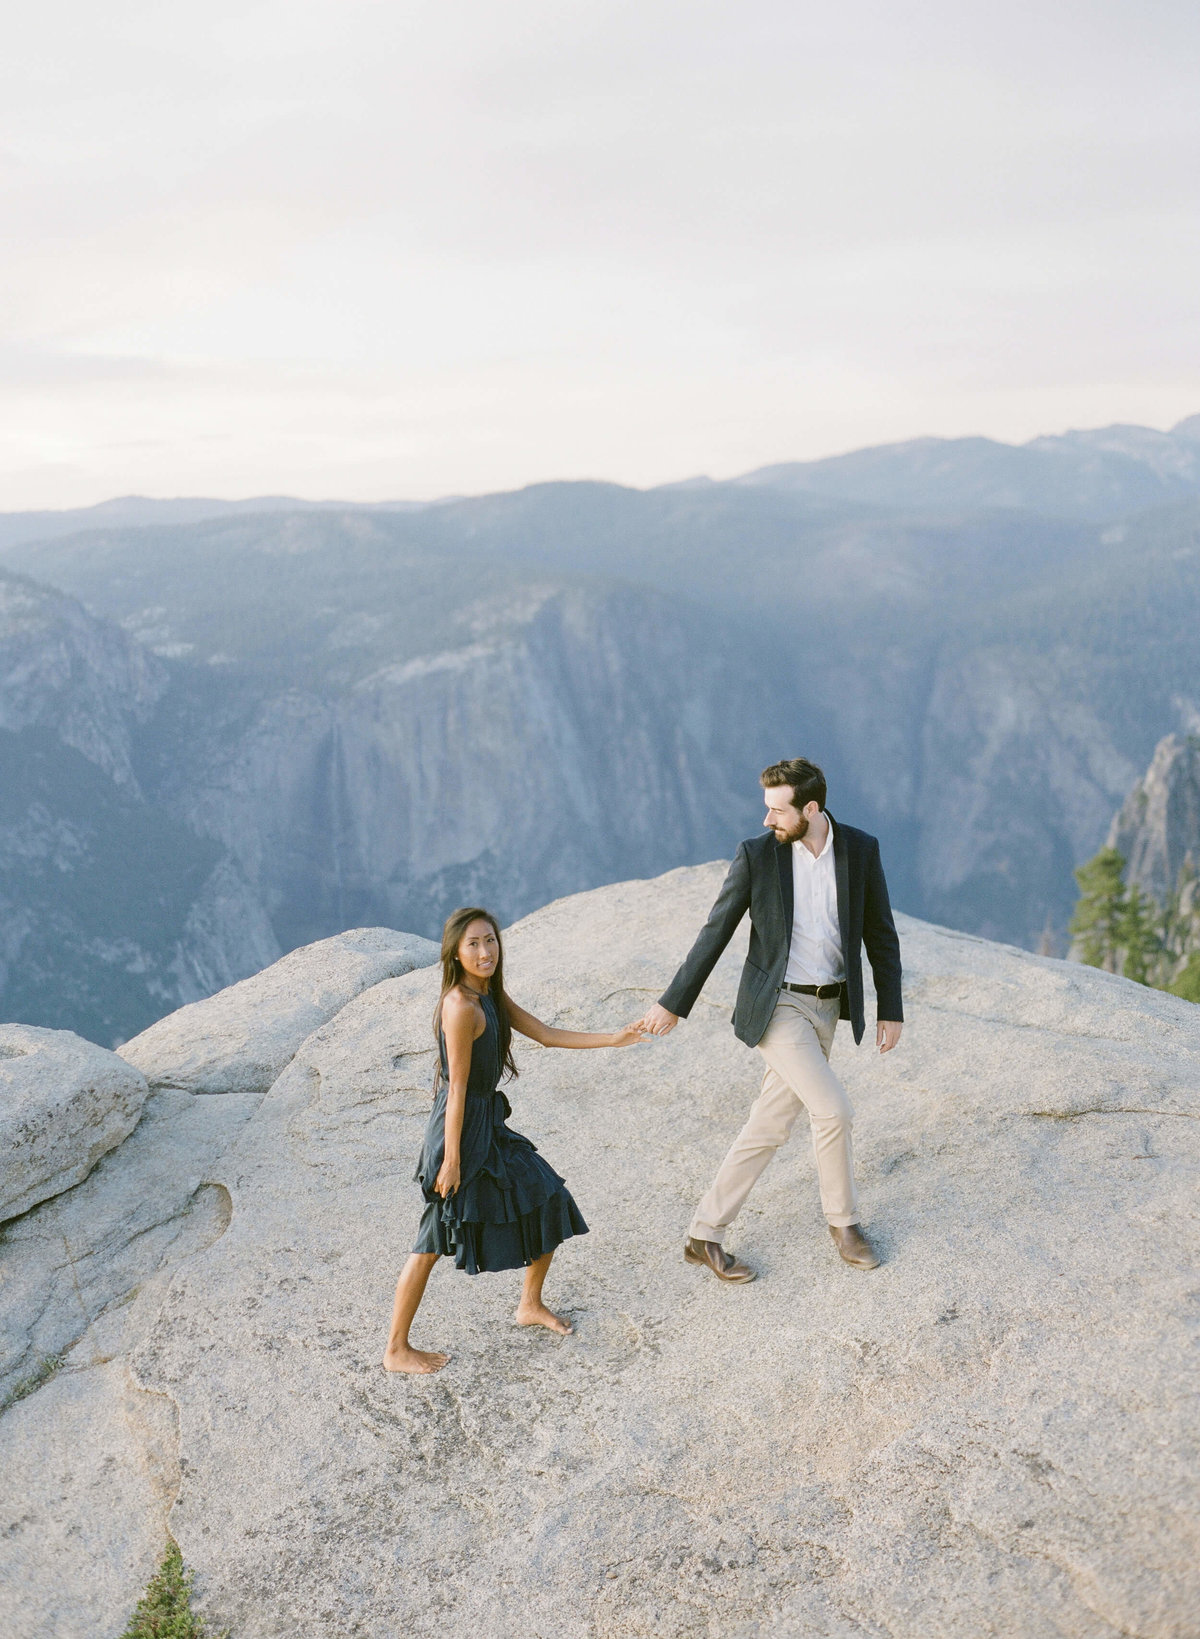 83-KTMerry-destination-engagement-photography-Yosemite-mountains